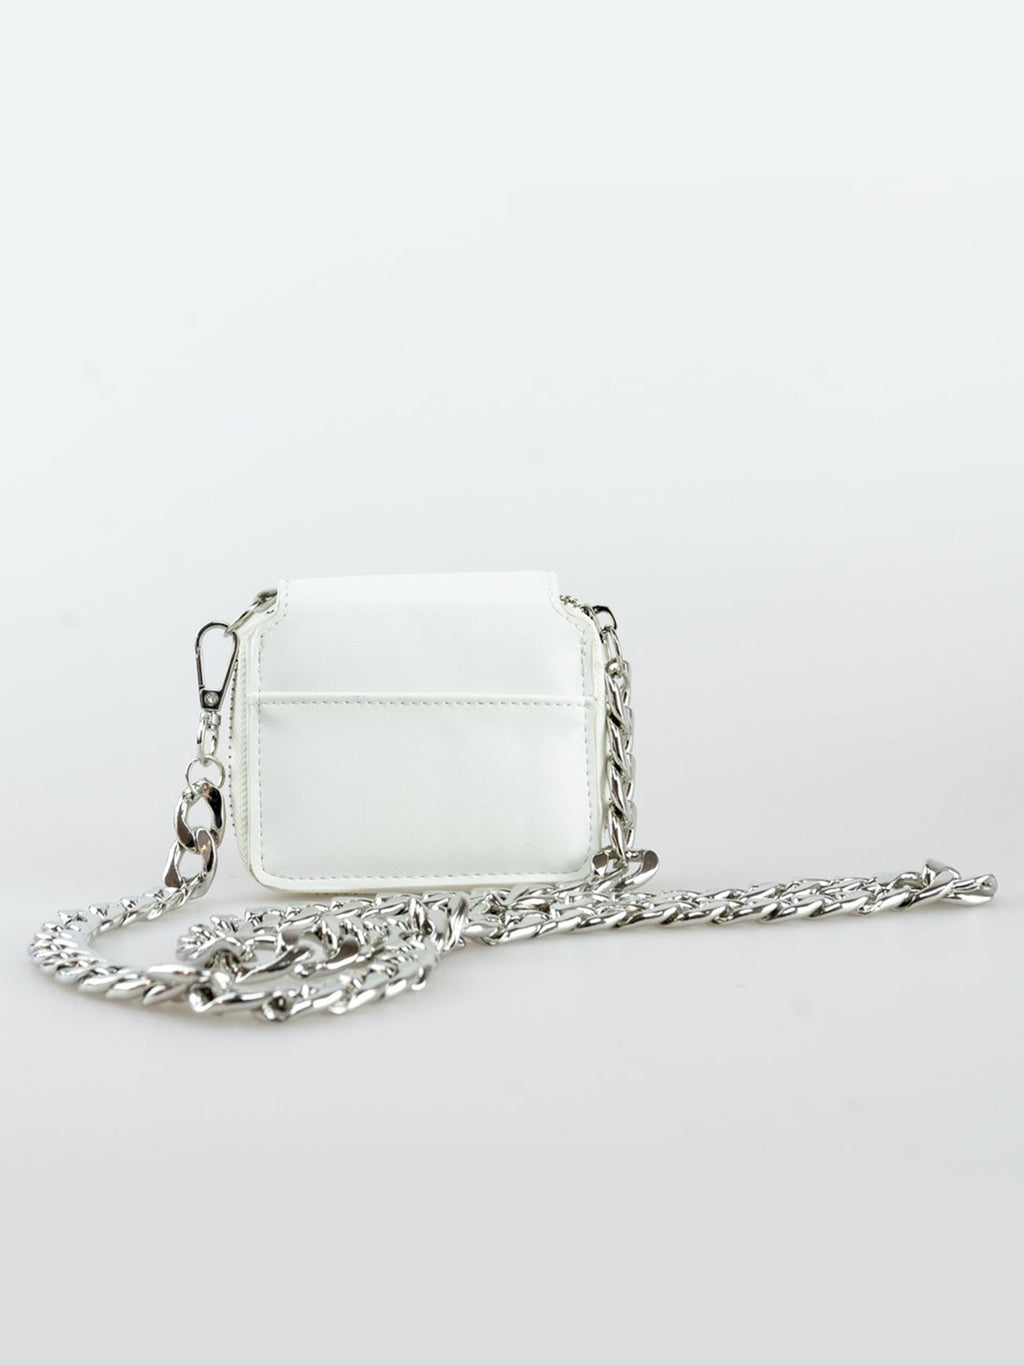 Mini Purse Bag - svnx